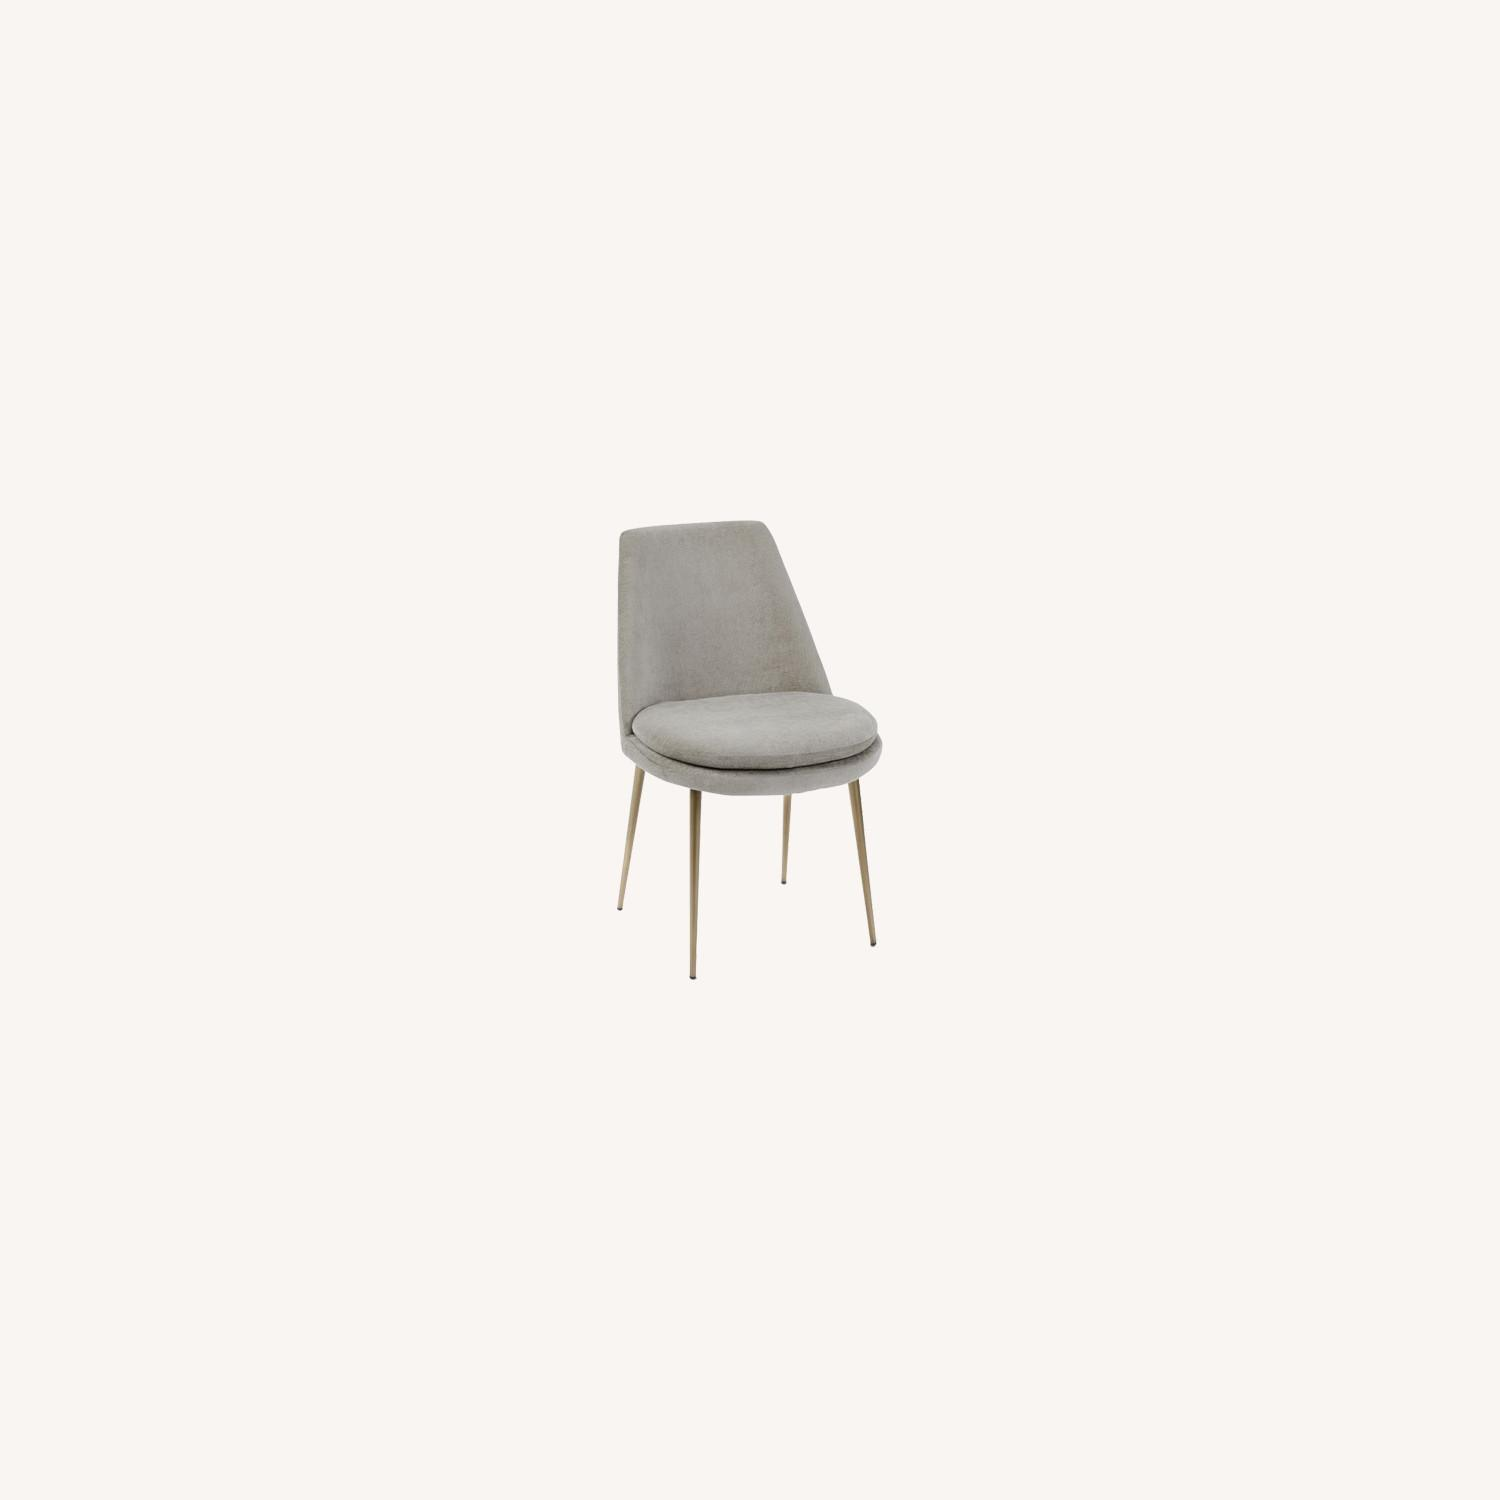 West Elm Finley Dining Chair - image-0